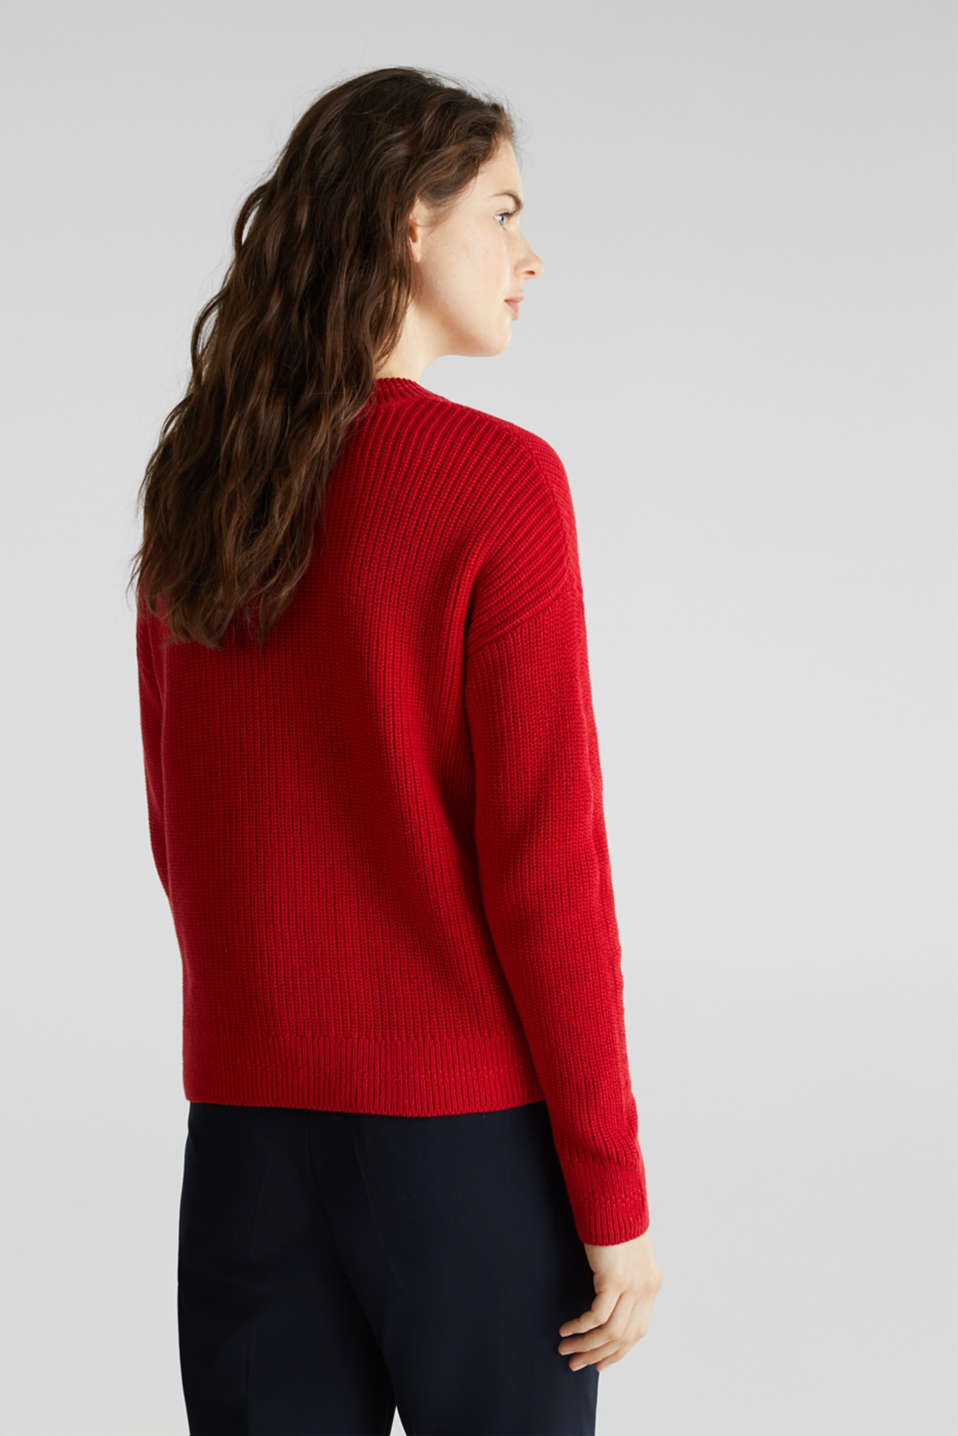 Jumper with textured details, 100% cotton, DARK RED, detail image number 2